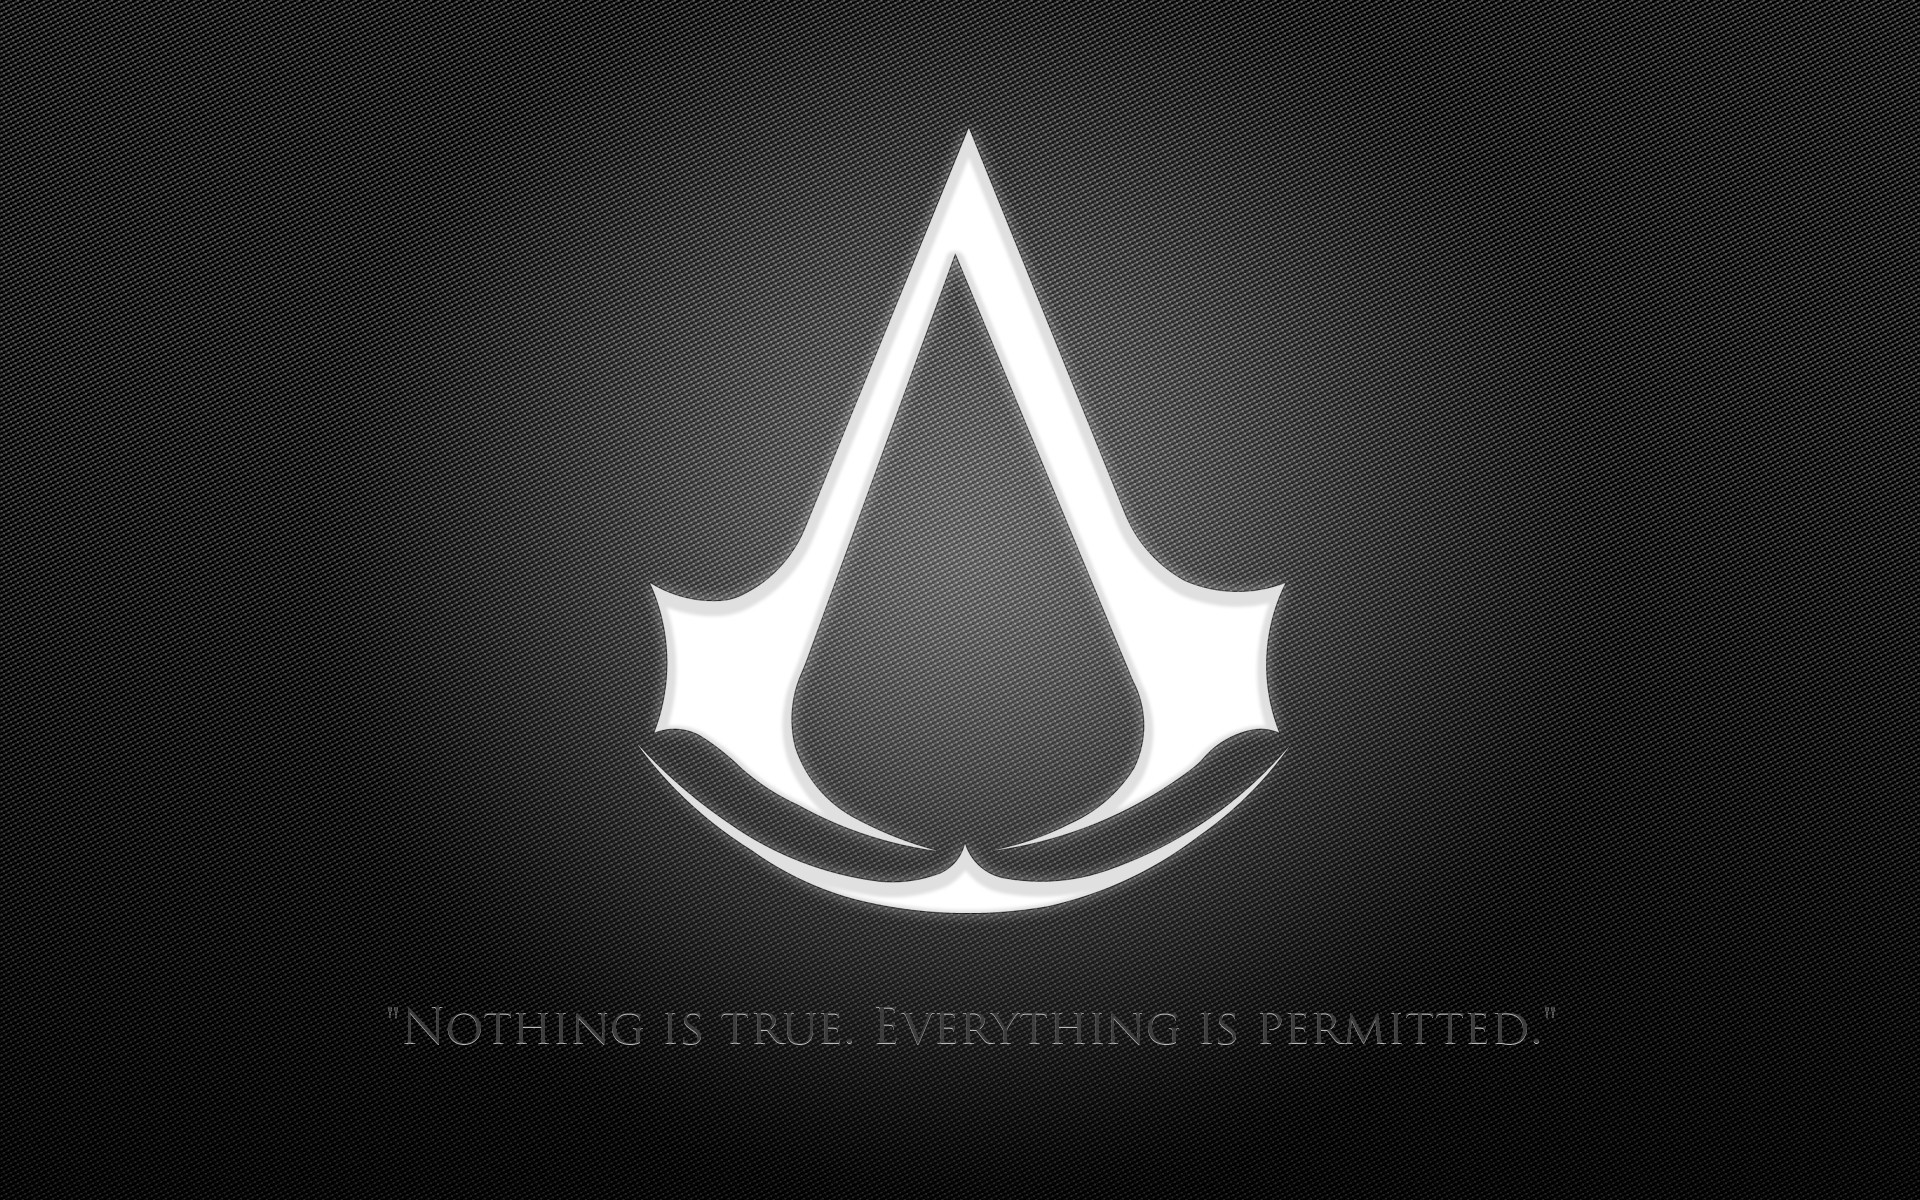 Wisdom assassins creed